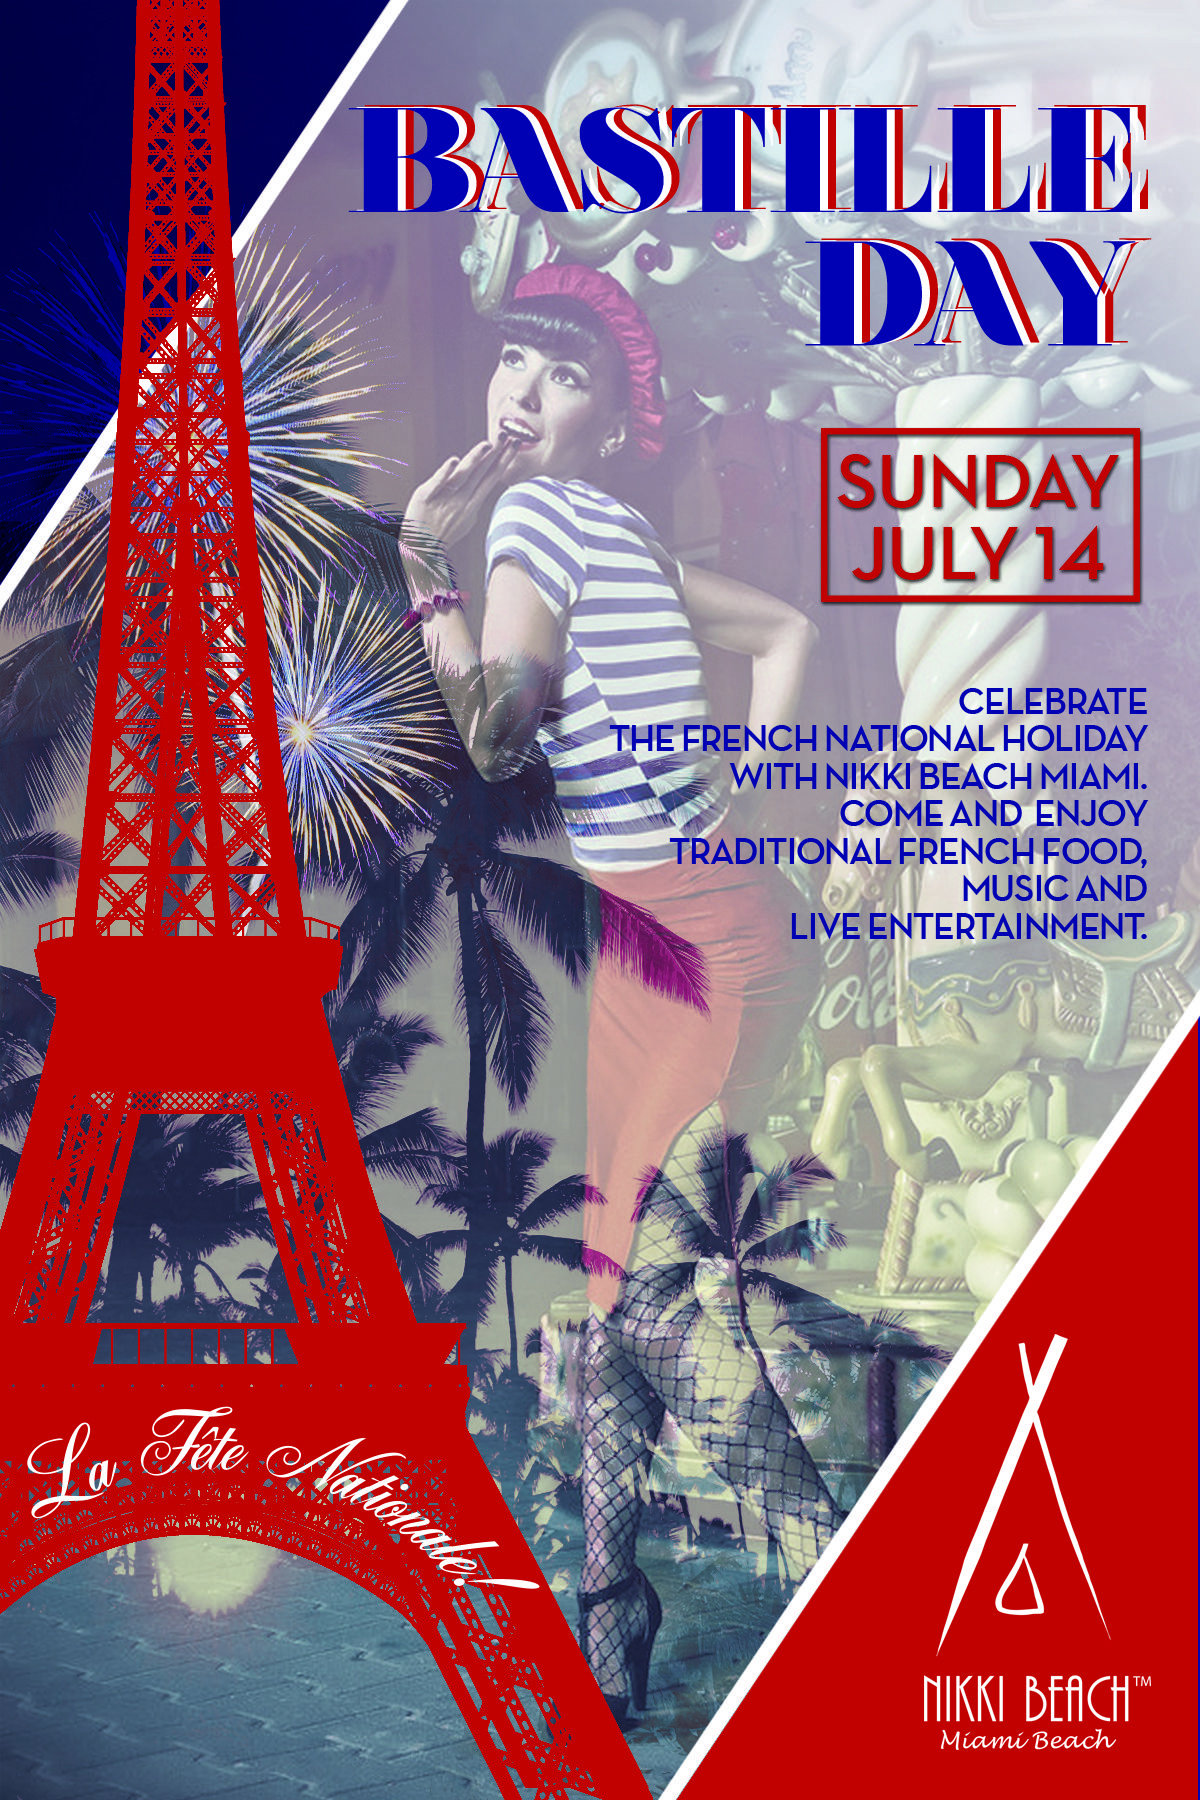 """Celebrate the French National Holiday with us at Nikki Beach Miami and see for yourself why we have been named the """"Sexiest Place on Earth.""""  Come enjoy traditional French food, music and live entertainment."""